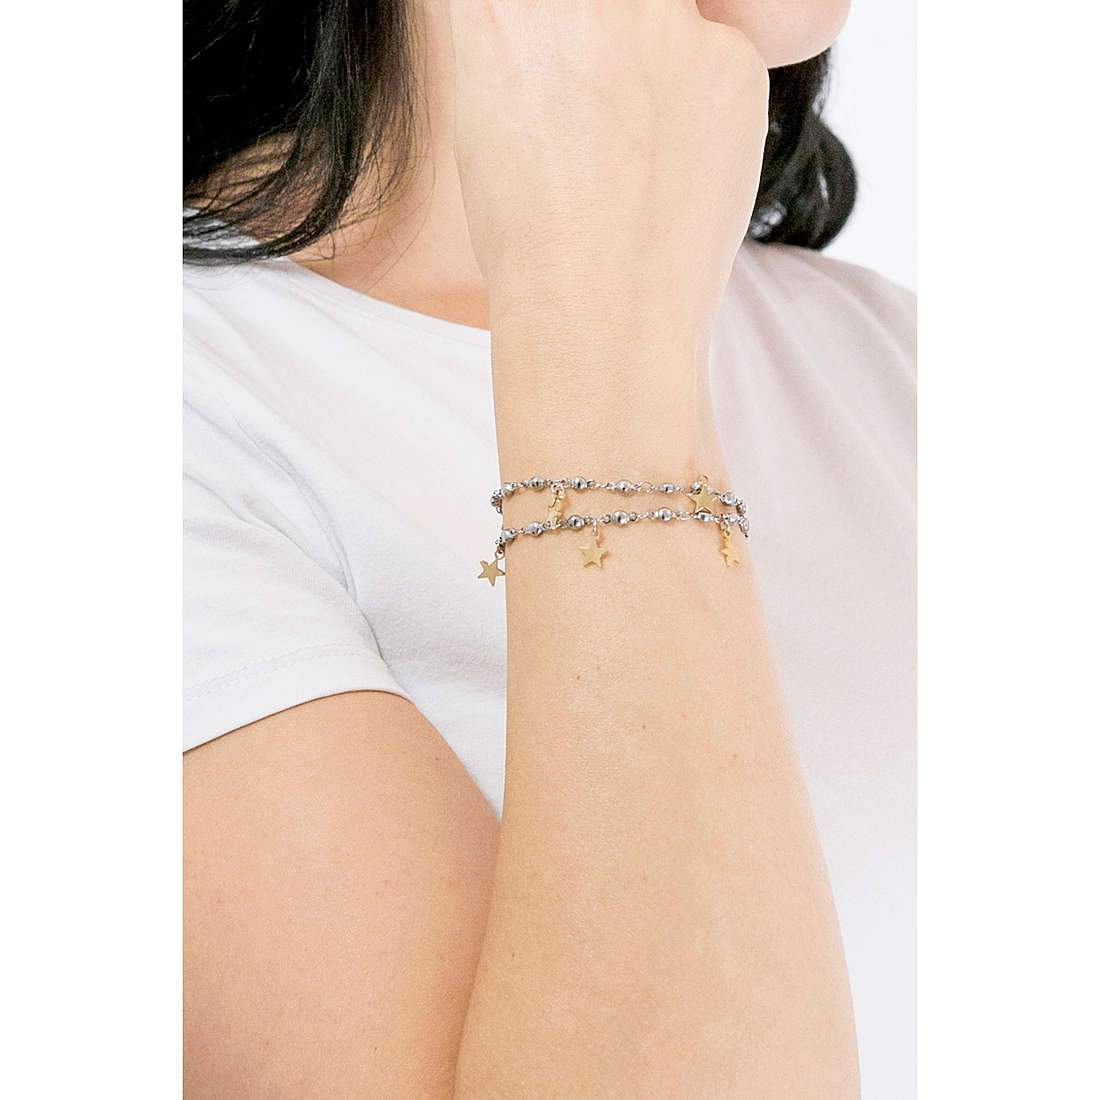 Luca Barra BK1844 Gold Bracelet with Gold Plating - Goldy Jewelry Store